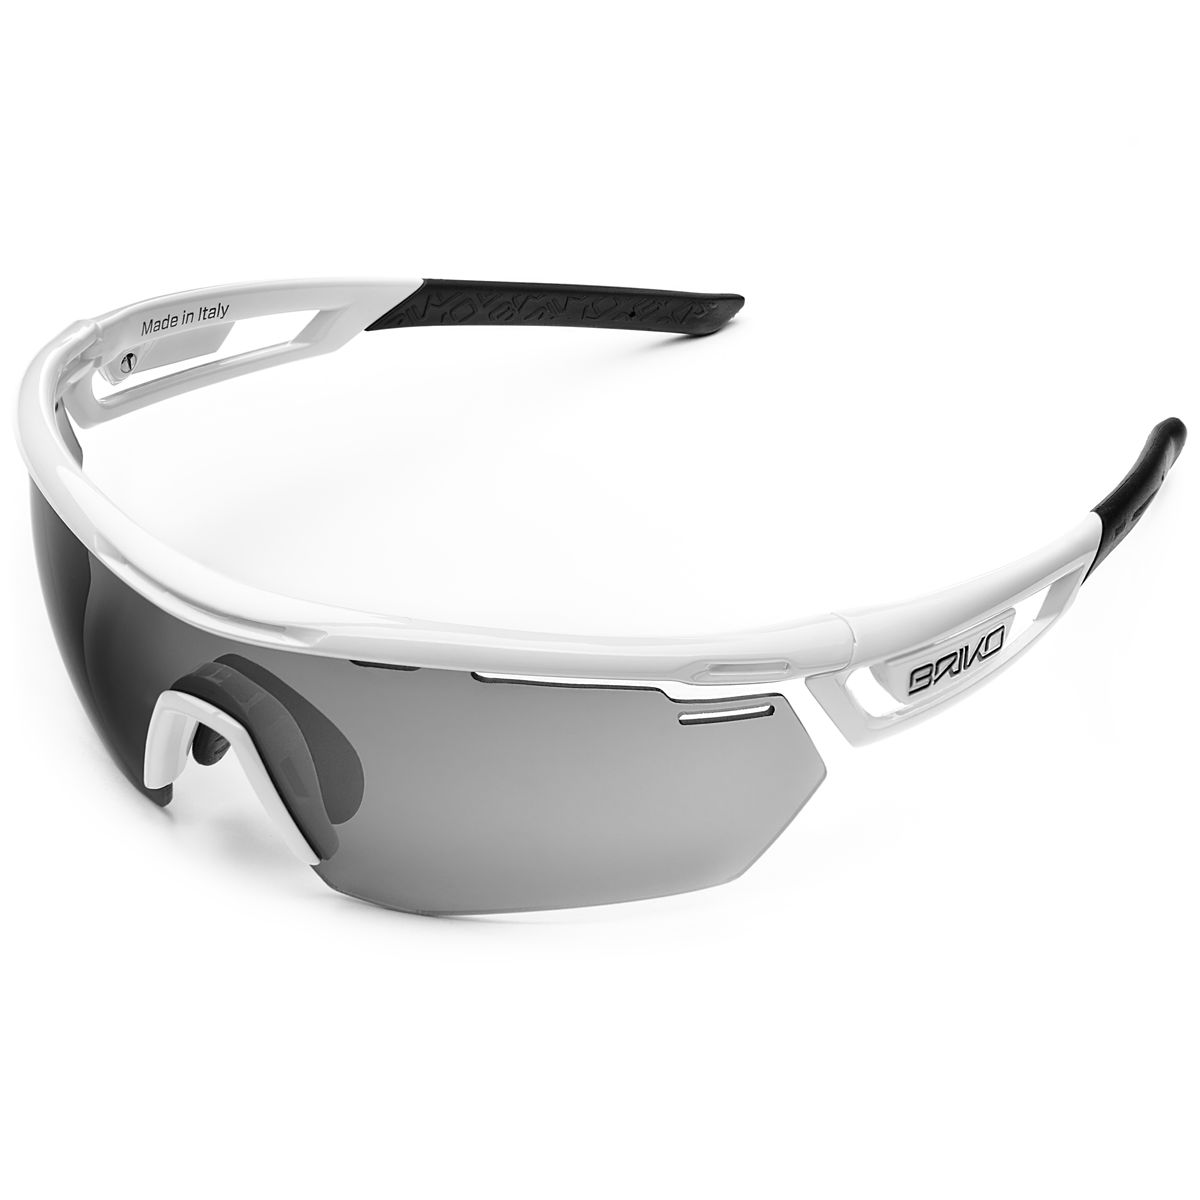 Briko GLASSES CYCLOPE Man Woman Cycling sport Sunglasses